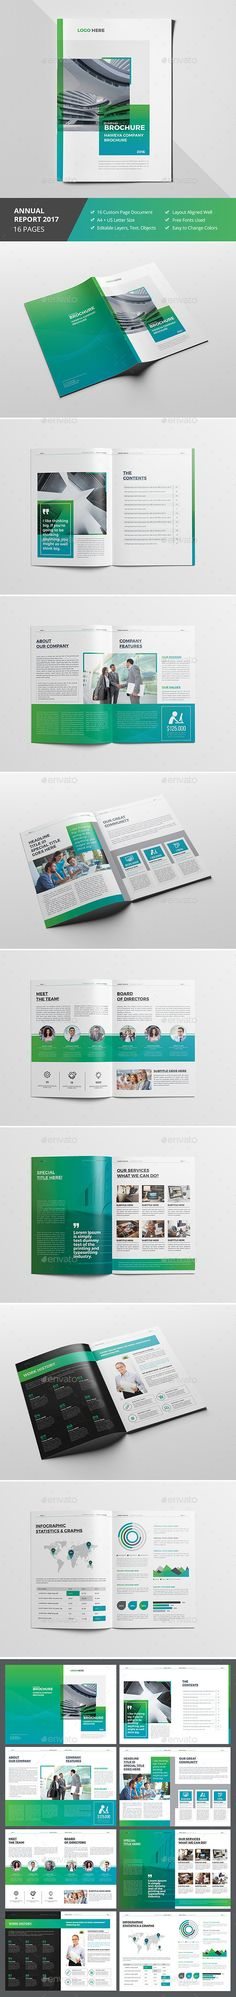 Haweya Pro Company Brochure Template 	InDesign INDD. Download here: https://graphicriver.net/item/haweya-pro-company-brochure/17098354?ref=ksioks